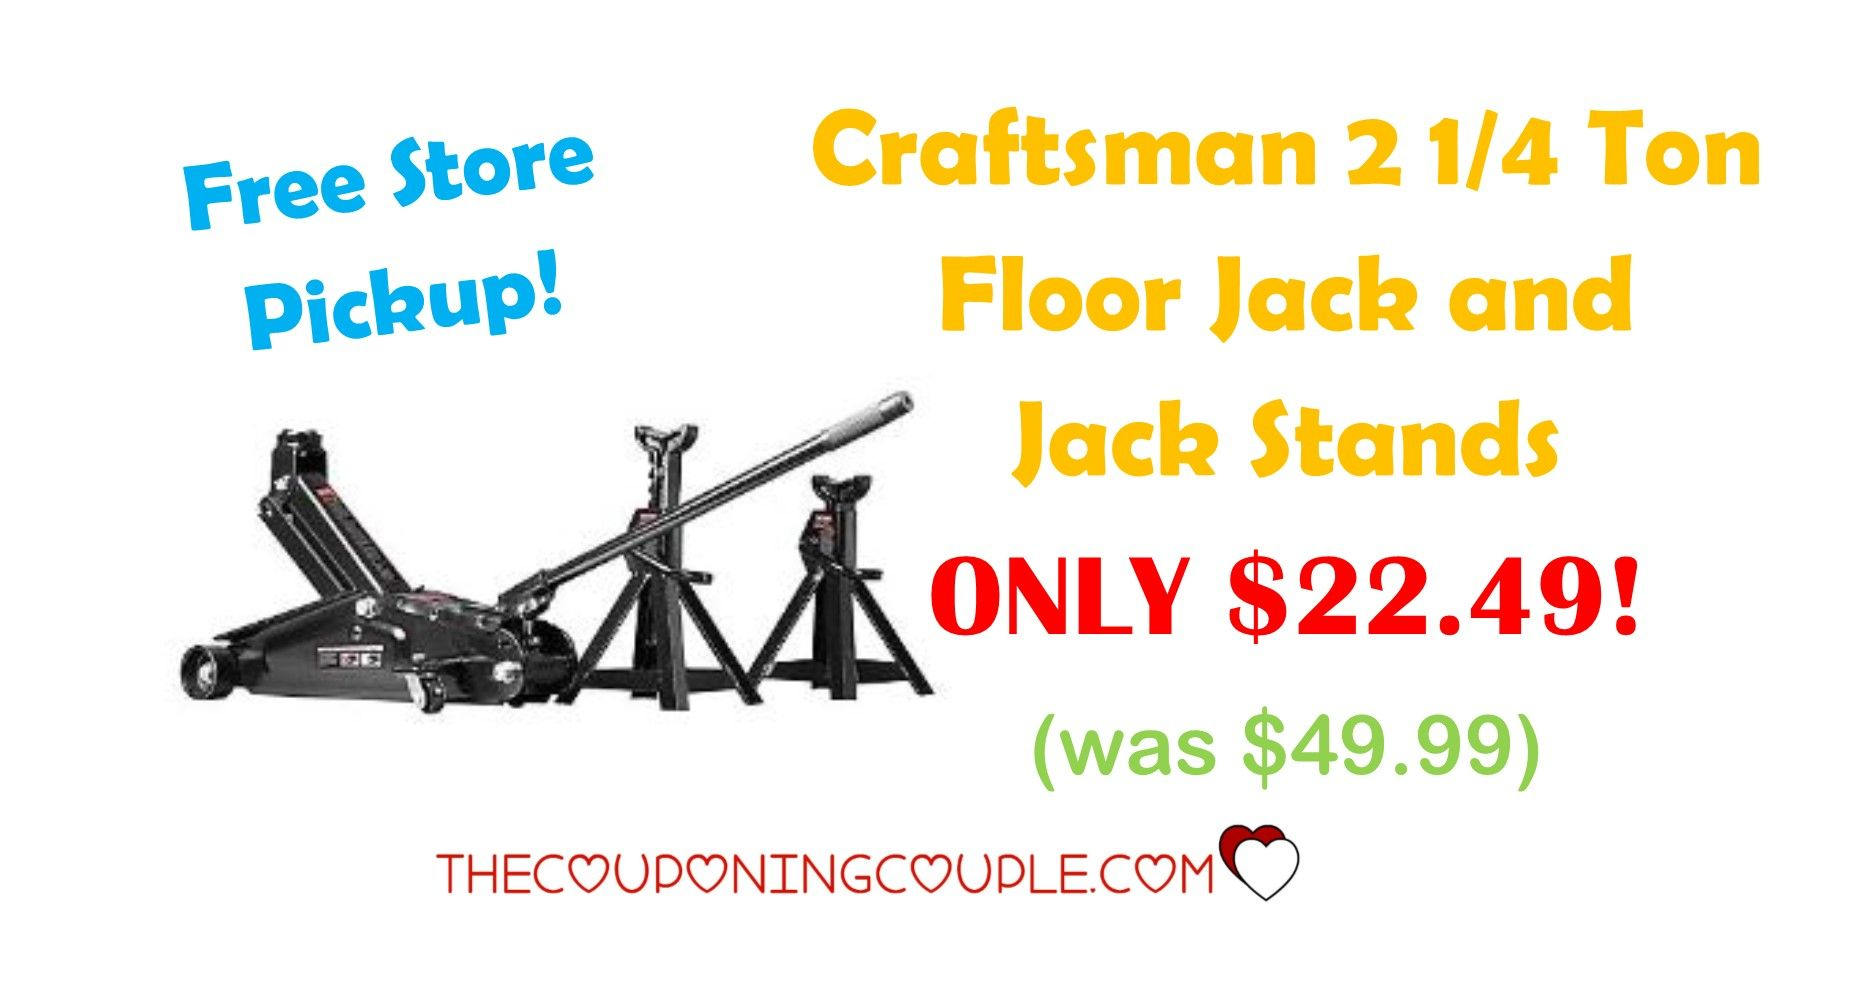 Craftsman 2 1/4 Ton Floor Jack and Jack Stands ONLY 22.49